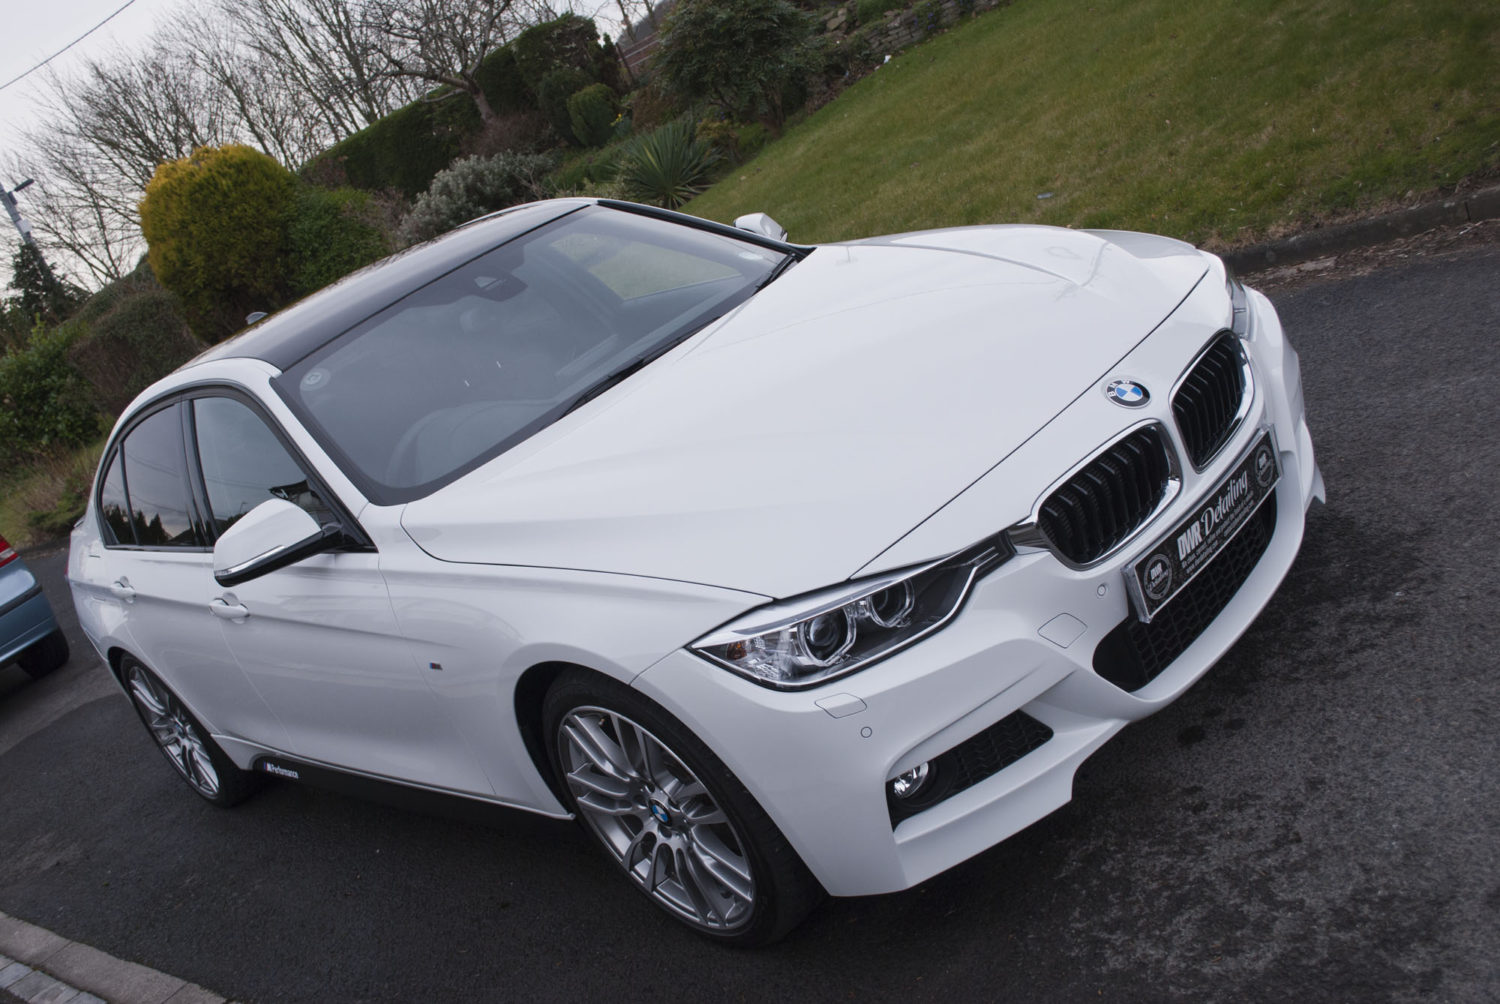 BMW 330D MSport Detailed by DWR Detailing